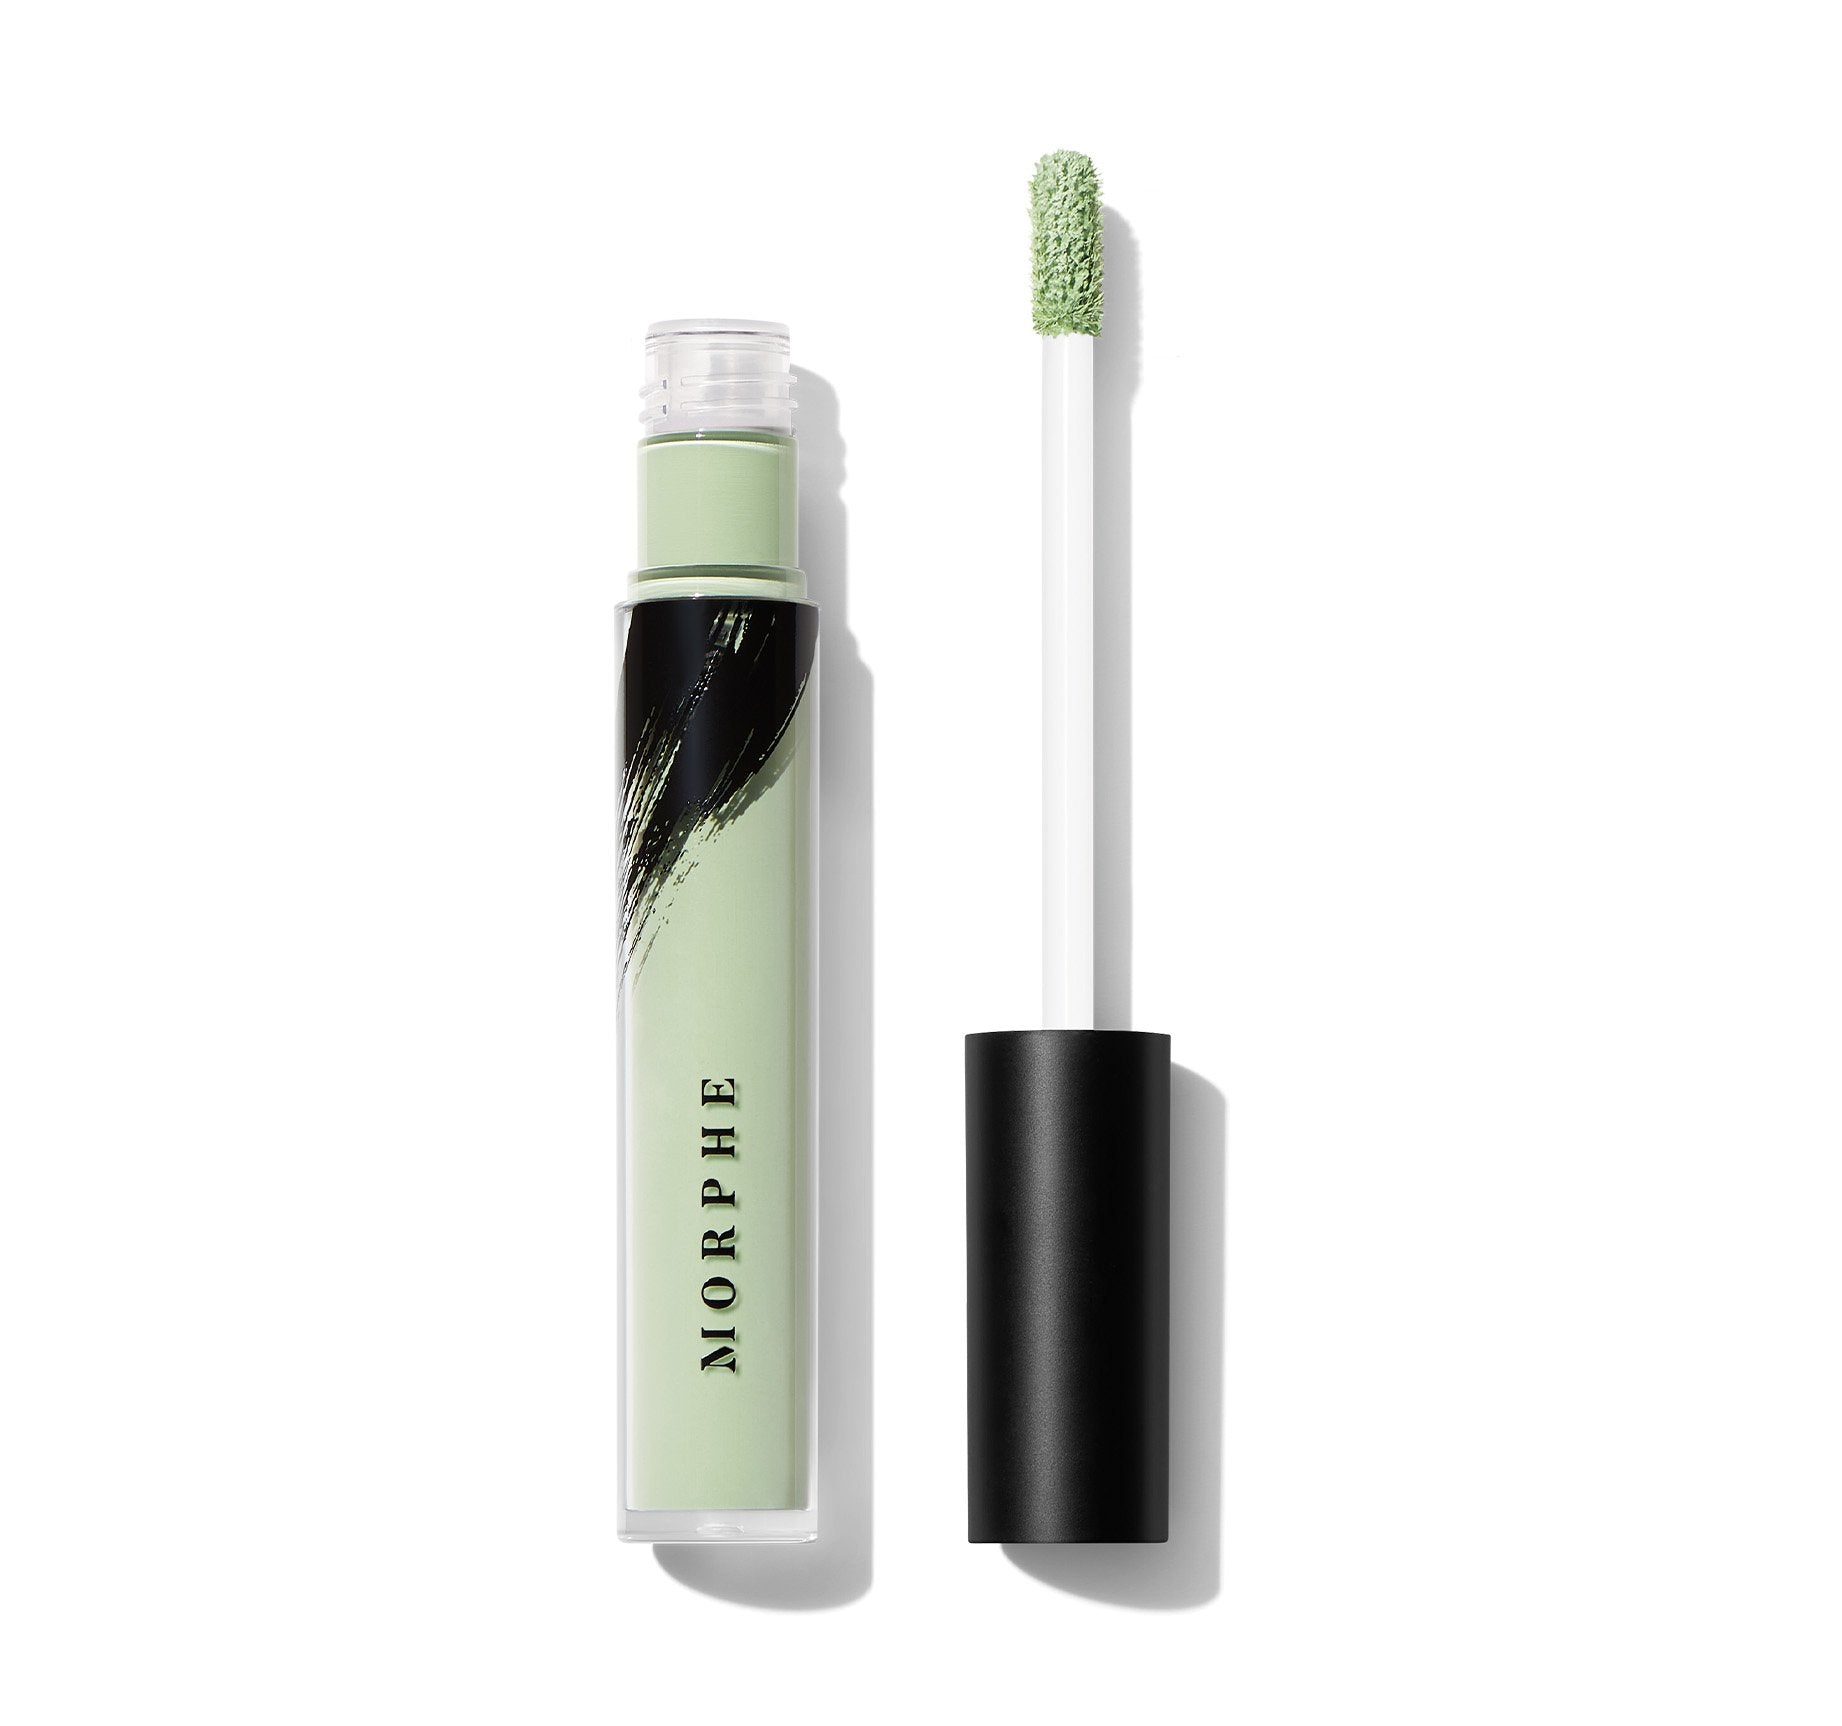 FLUIDITY COLOR CORRECTING CONCEALER - GREEN, view larger image